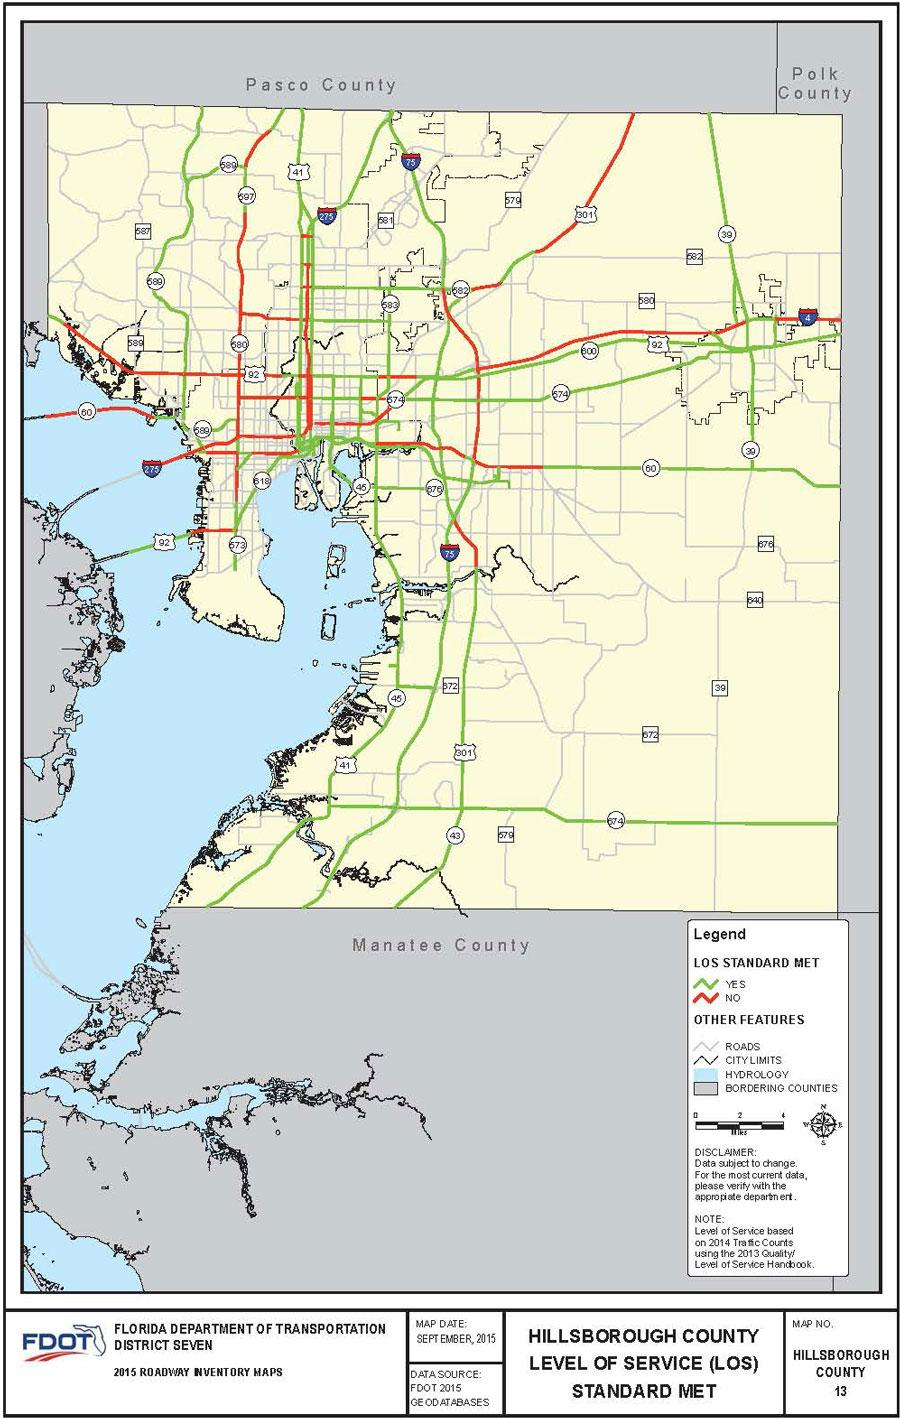 Tampa Traffic Map Here's what Tampa Bay traffic looks like according to FDOT   Tampa  Tampa Traffic Map